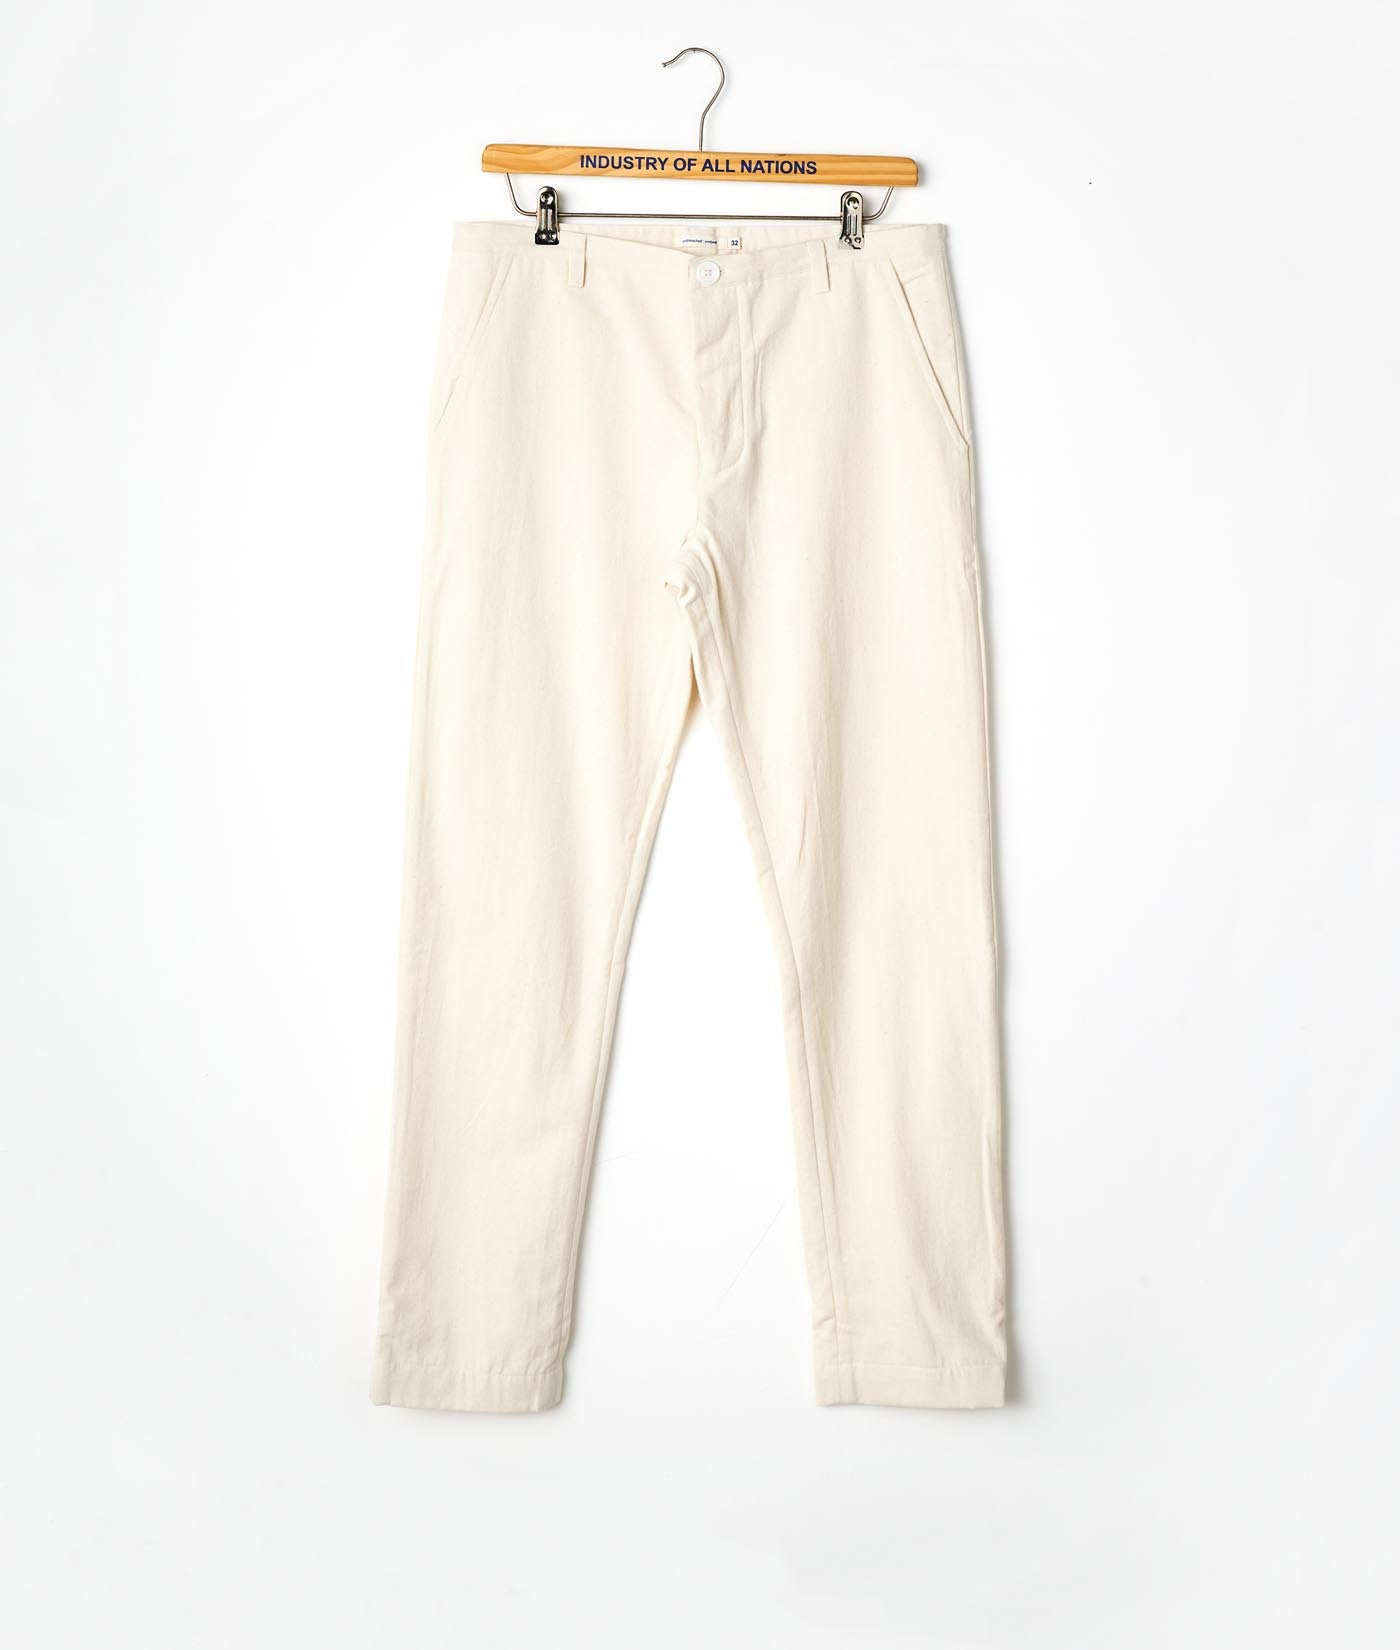 Industry of All Nations Organic Cotton Chino Pants Natural